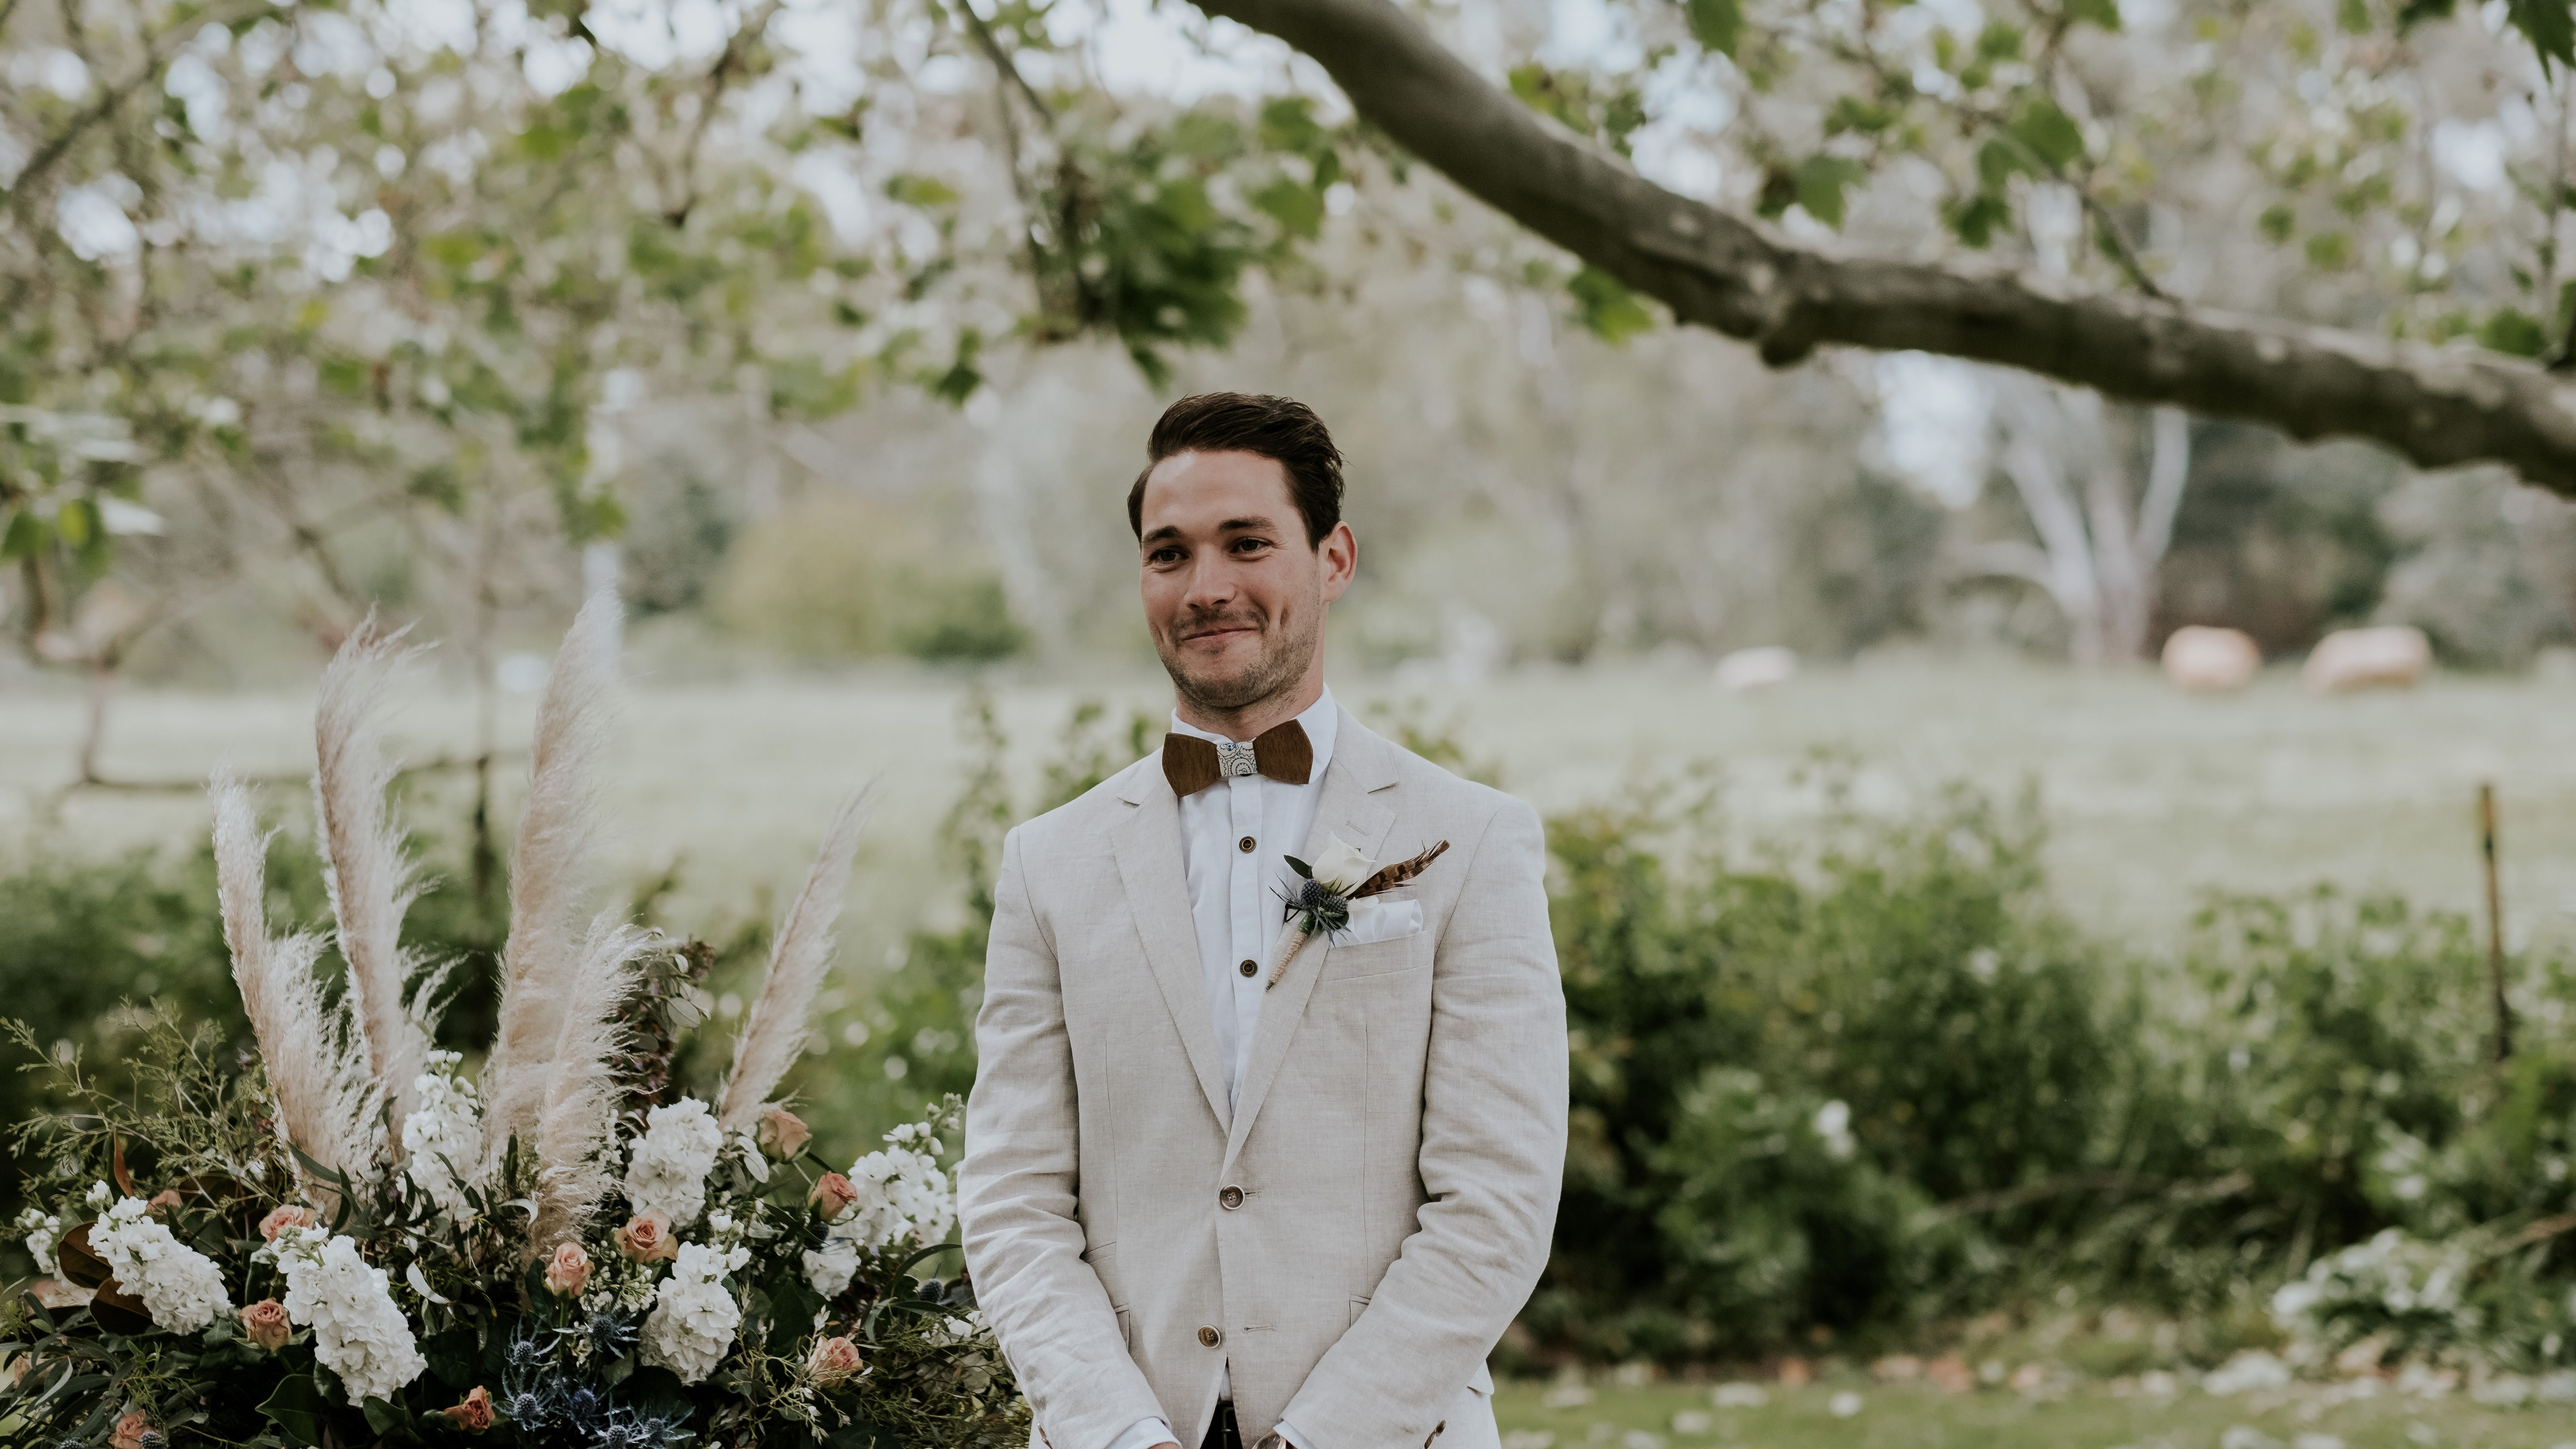 5 Things the Groom's Parents Should Do